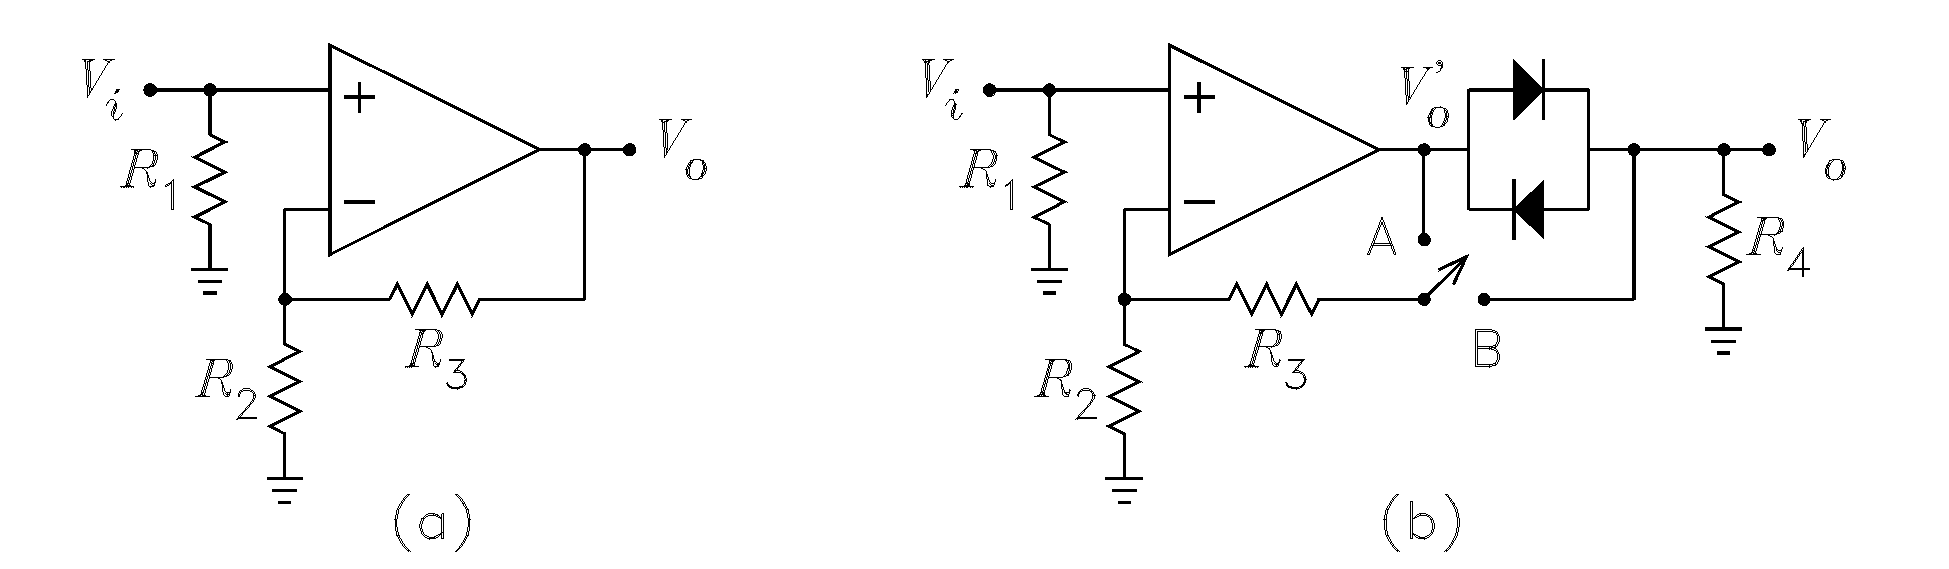 Ece 4435 Operational Amplifier Design Inverting Vs Noninverting Non